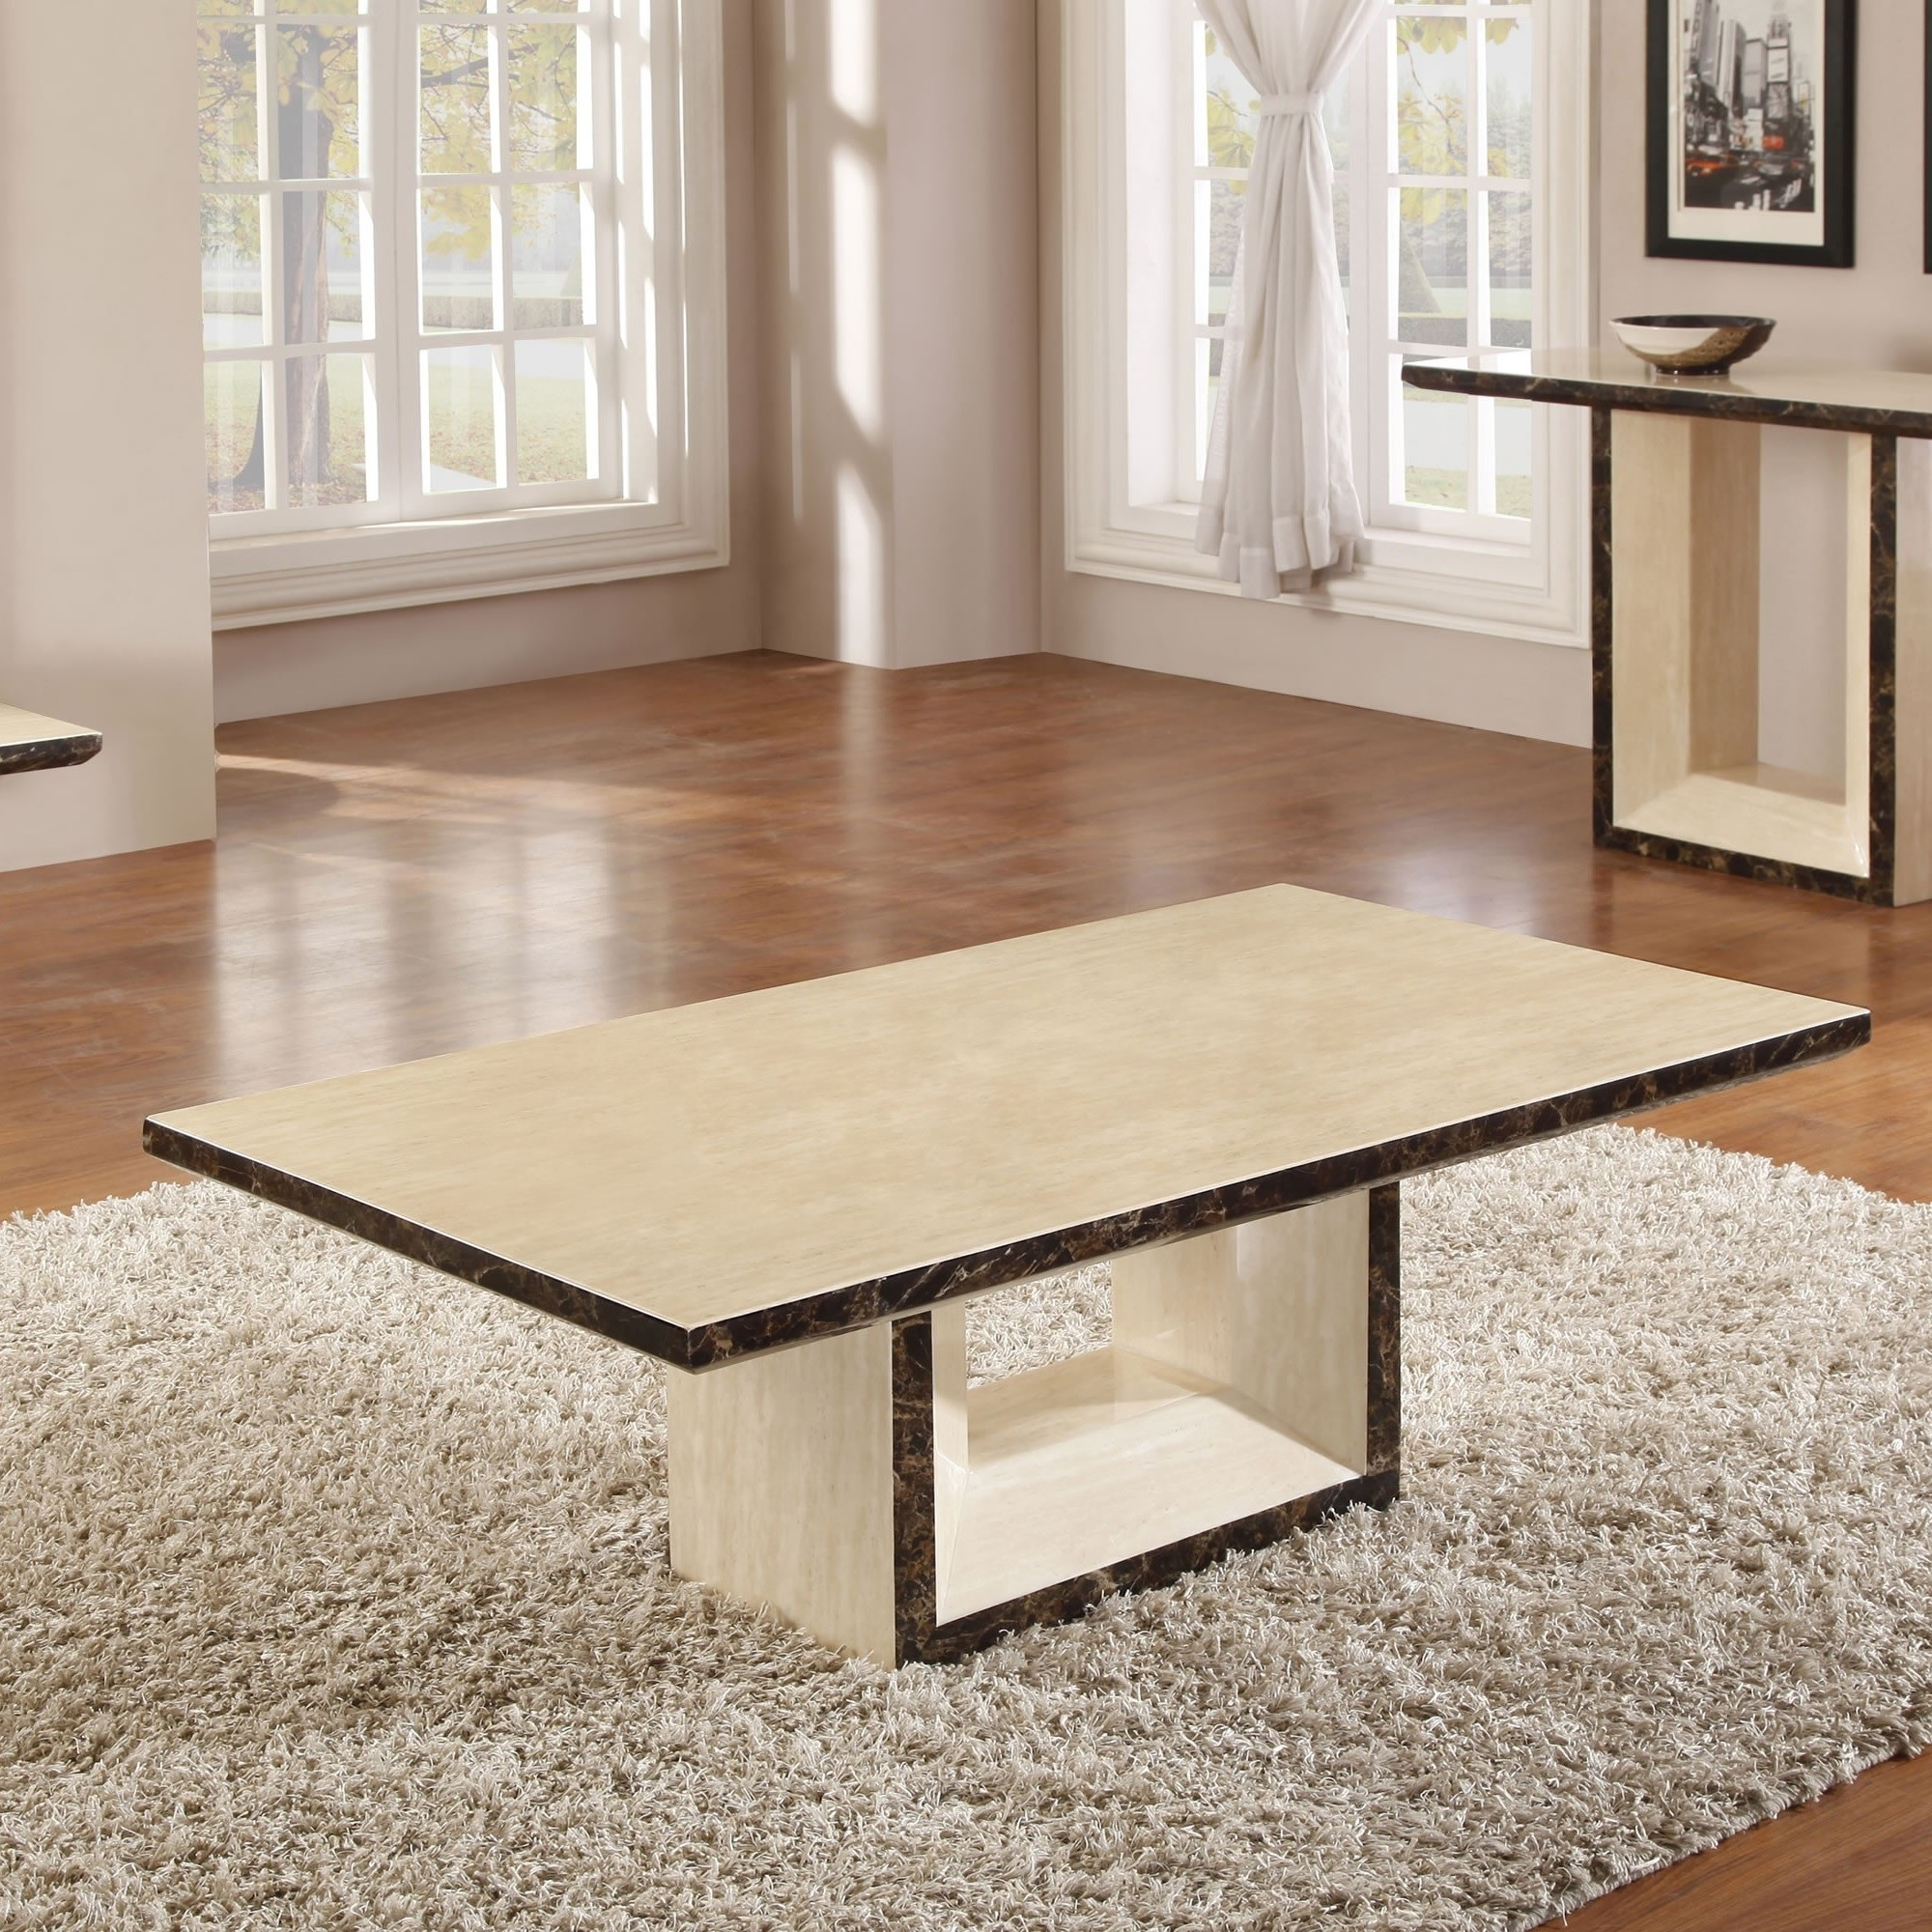 Most Recent Marble Coffee Table Diy – Marble Coffee Table: Elegant Table To Pertaining To Large Slab Marble Coffee Tables With Antiqued Silver Base (View 12 of 20)